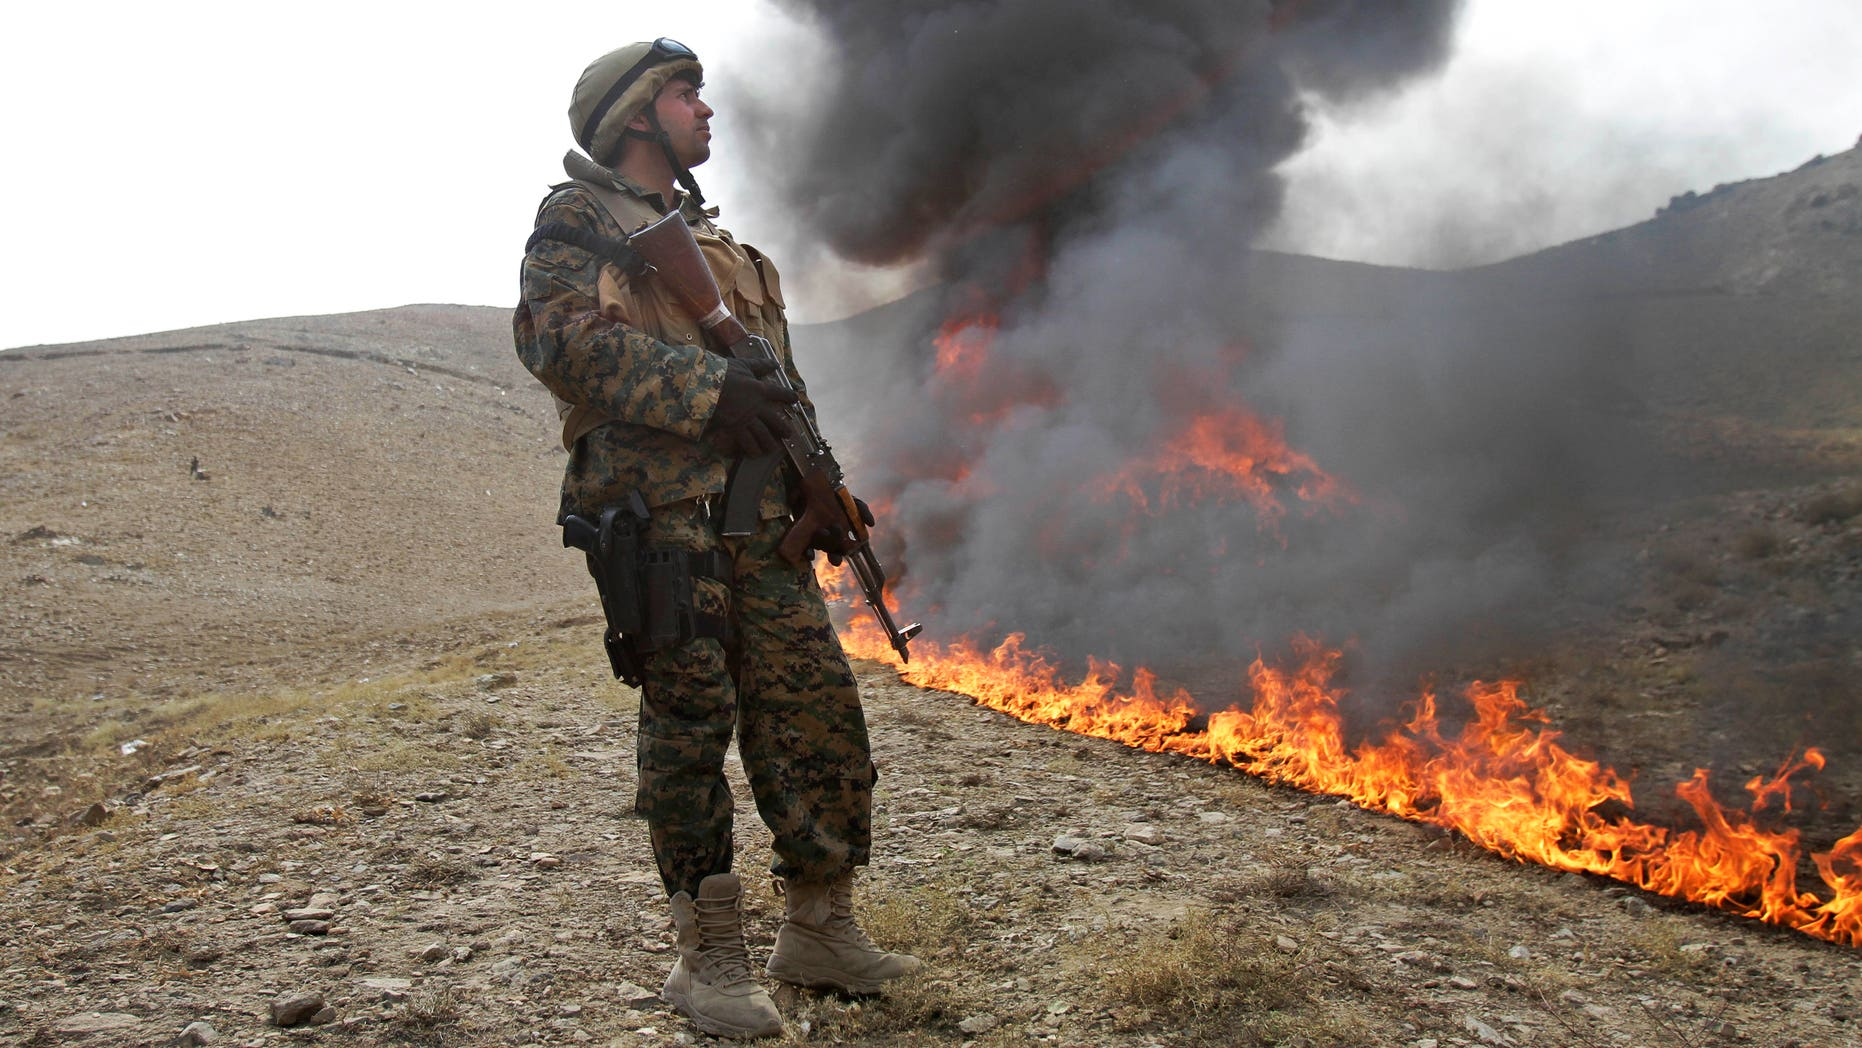 Oct. 14, 2012: An Afghan counternarcotic policeman (CNPA) secures the area as 25 tons of drugs and drug-making gear are burned on the outskirts of Kabul, Afghanistan.